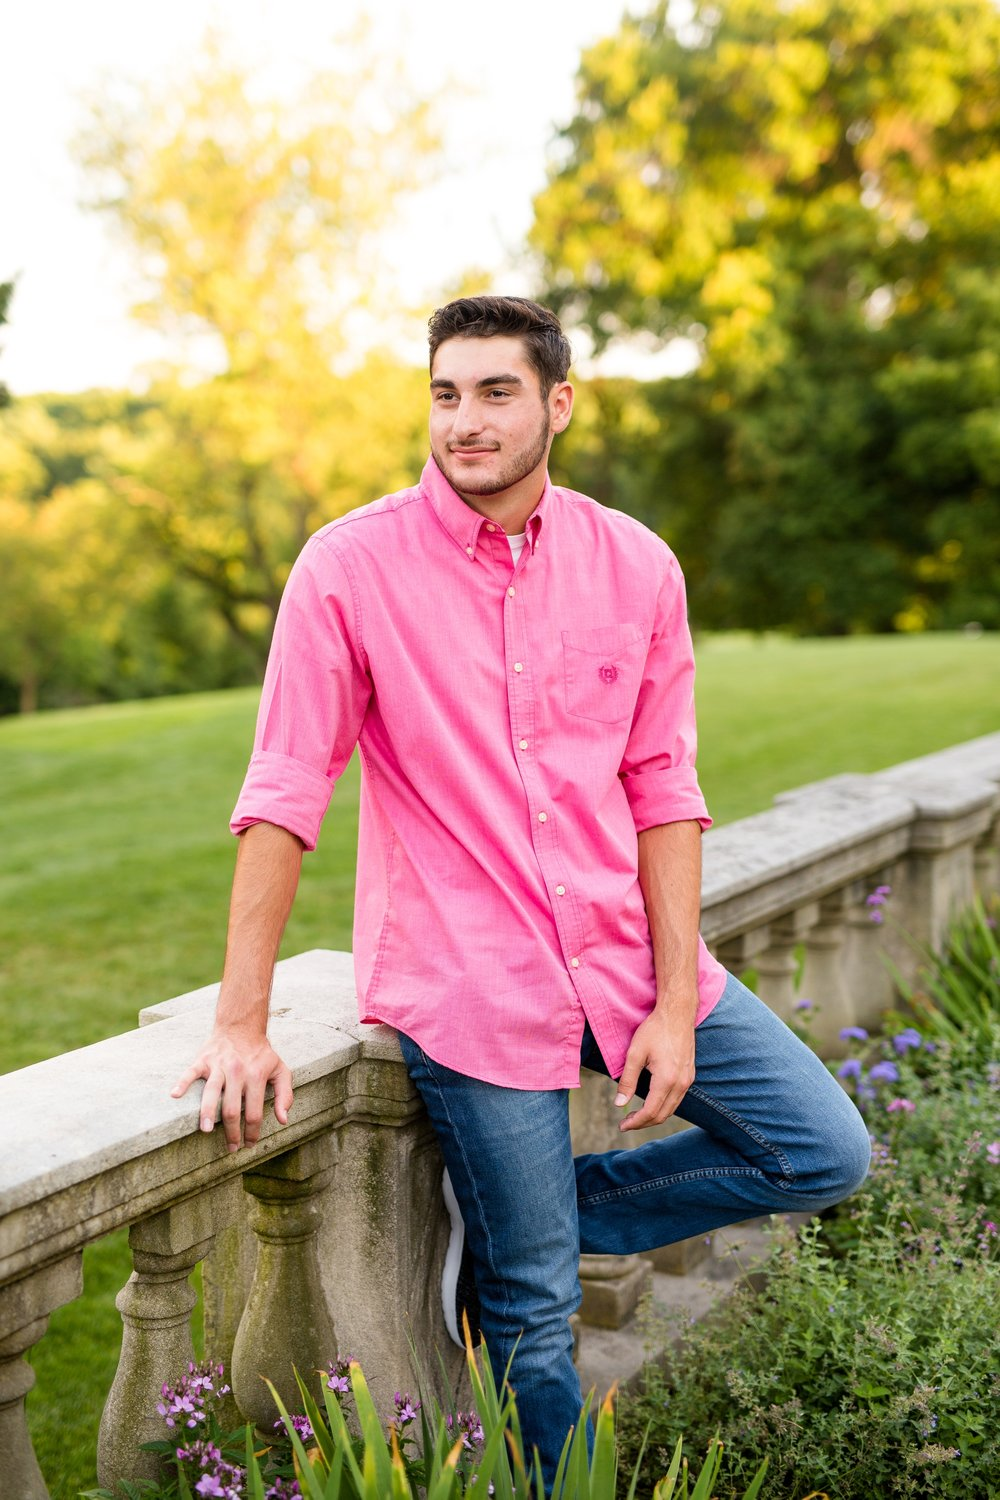 places to take senior pictures in pittsburgh, hartwood acres senior photos, pittsburgh senior photographer, best places to take senior pictures in pittsburgh